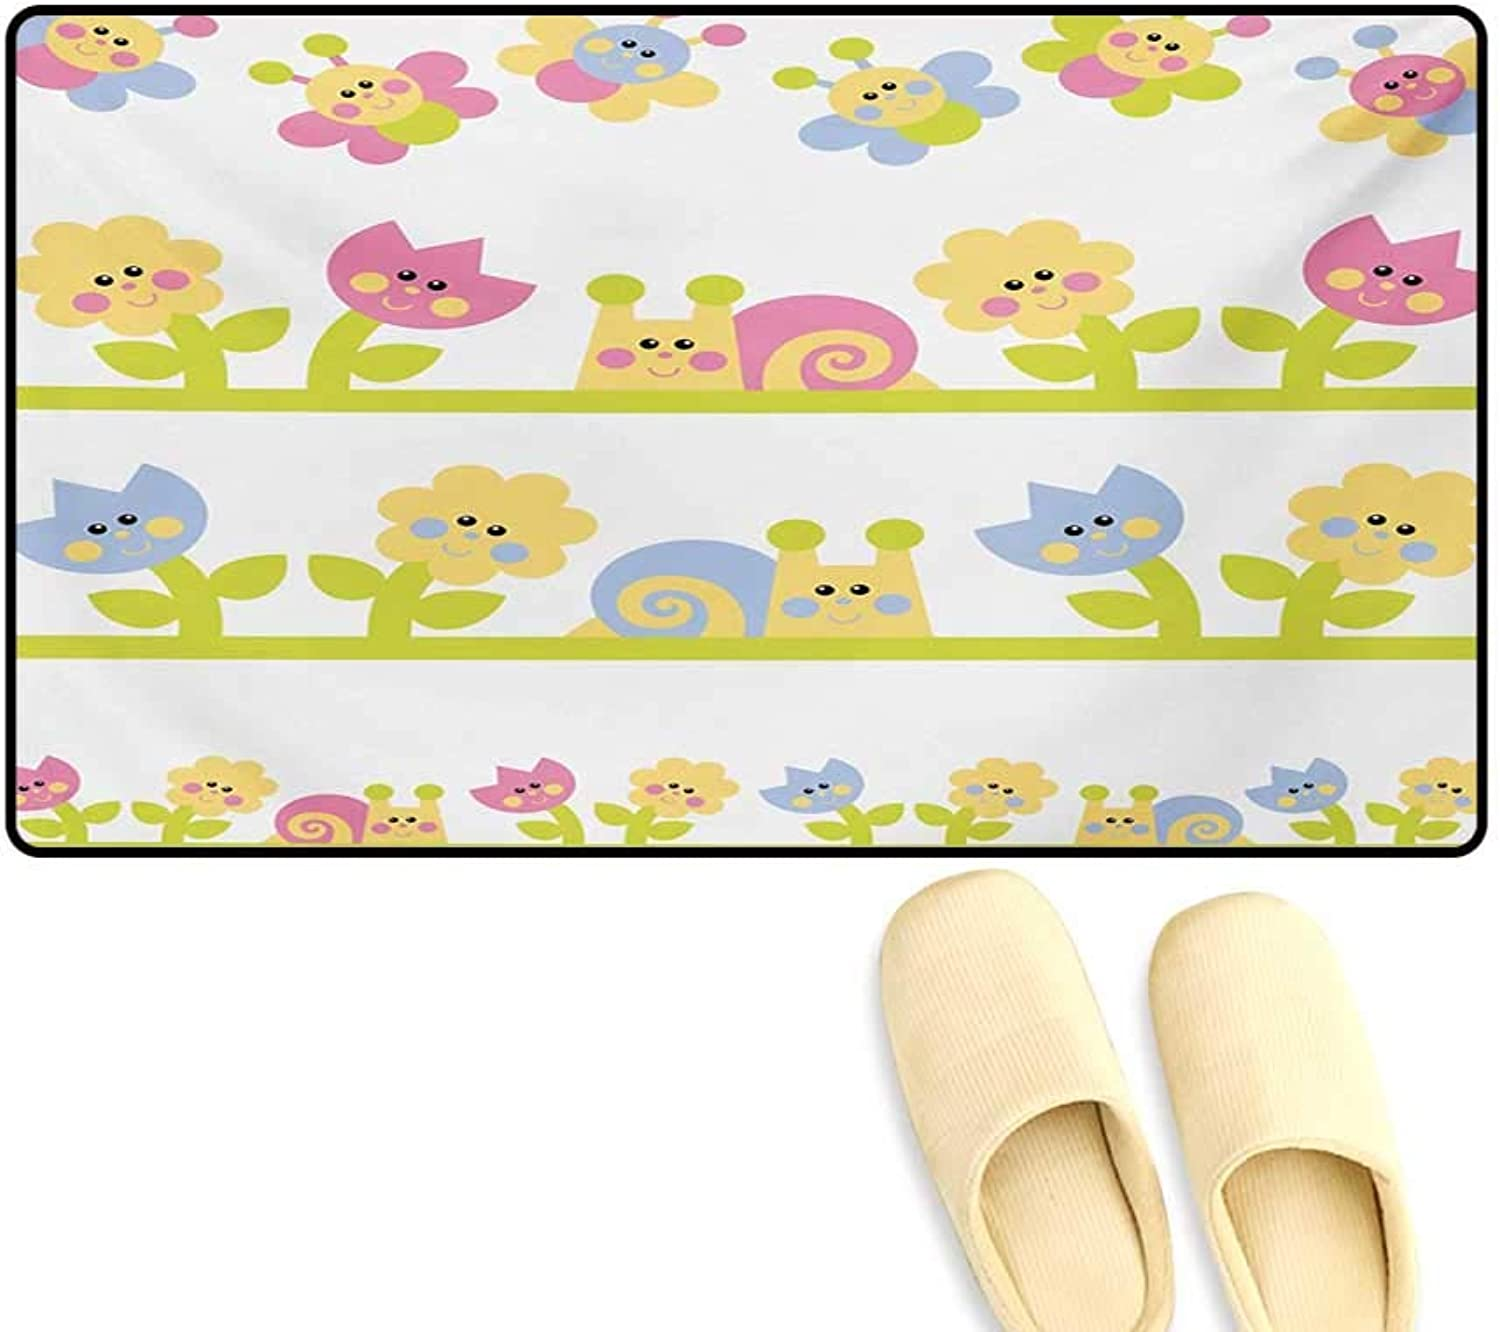 Door-mat,Cartoon Character Bees Tulip and Daisy Flowers Snails Garden Pattern,Bathroom Mat for Tub Non Slip,Baby bluee Pale Green Yellow,24 x36